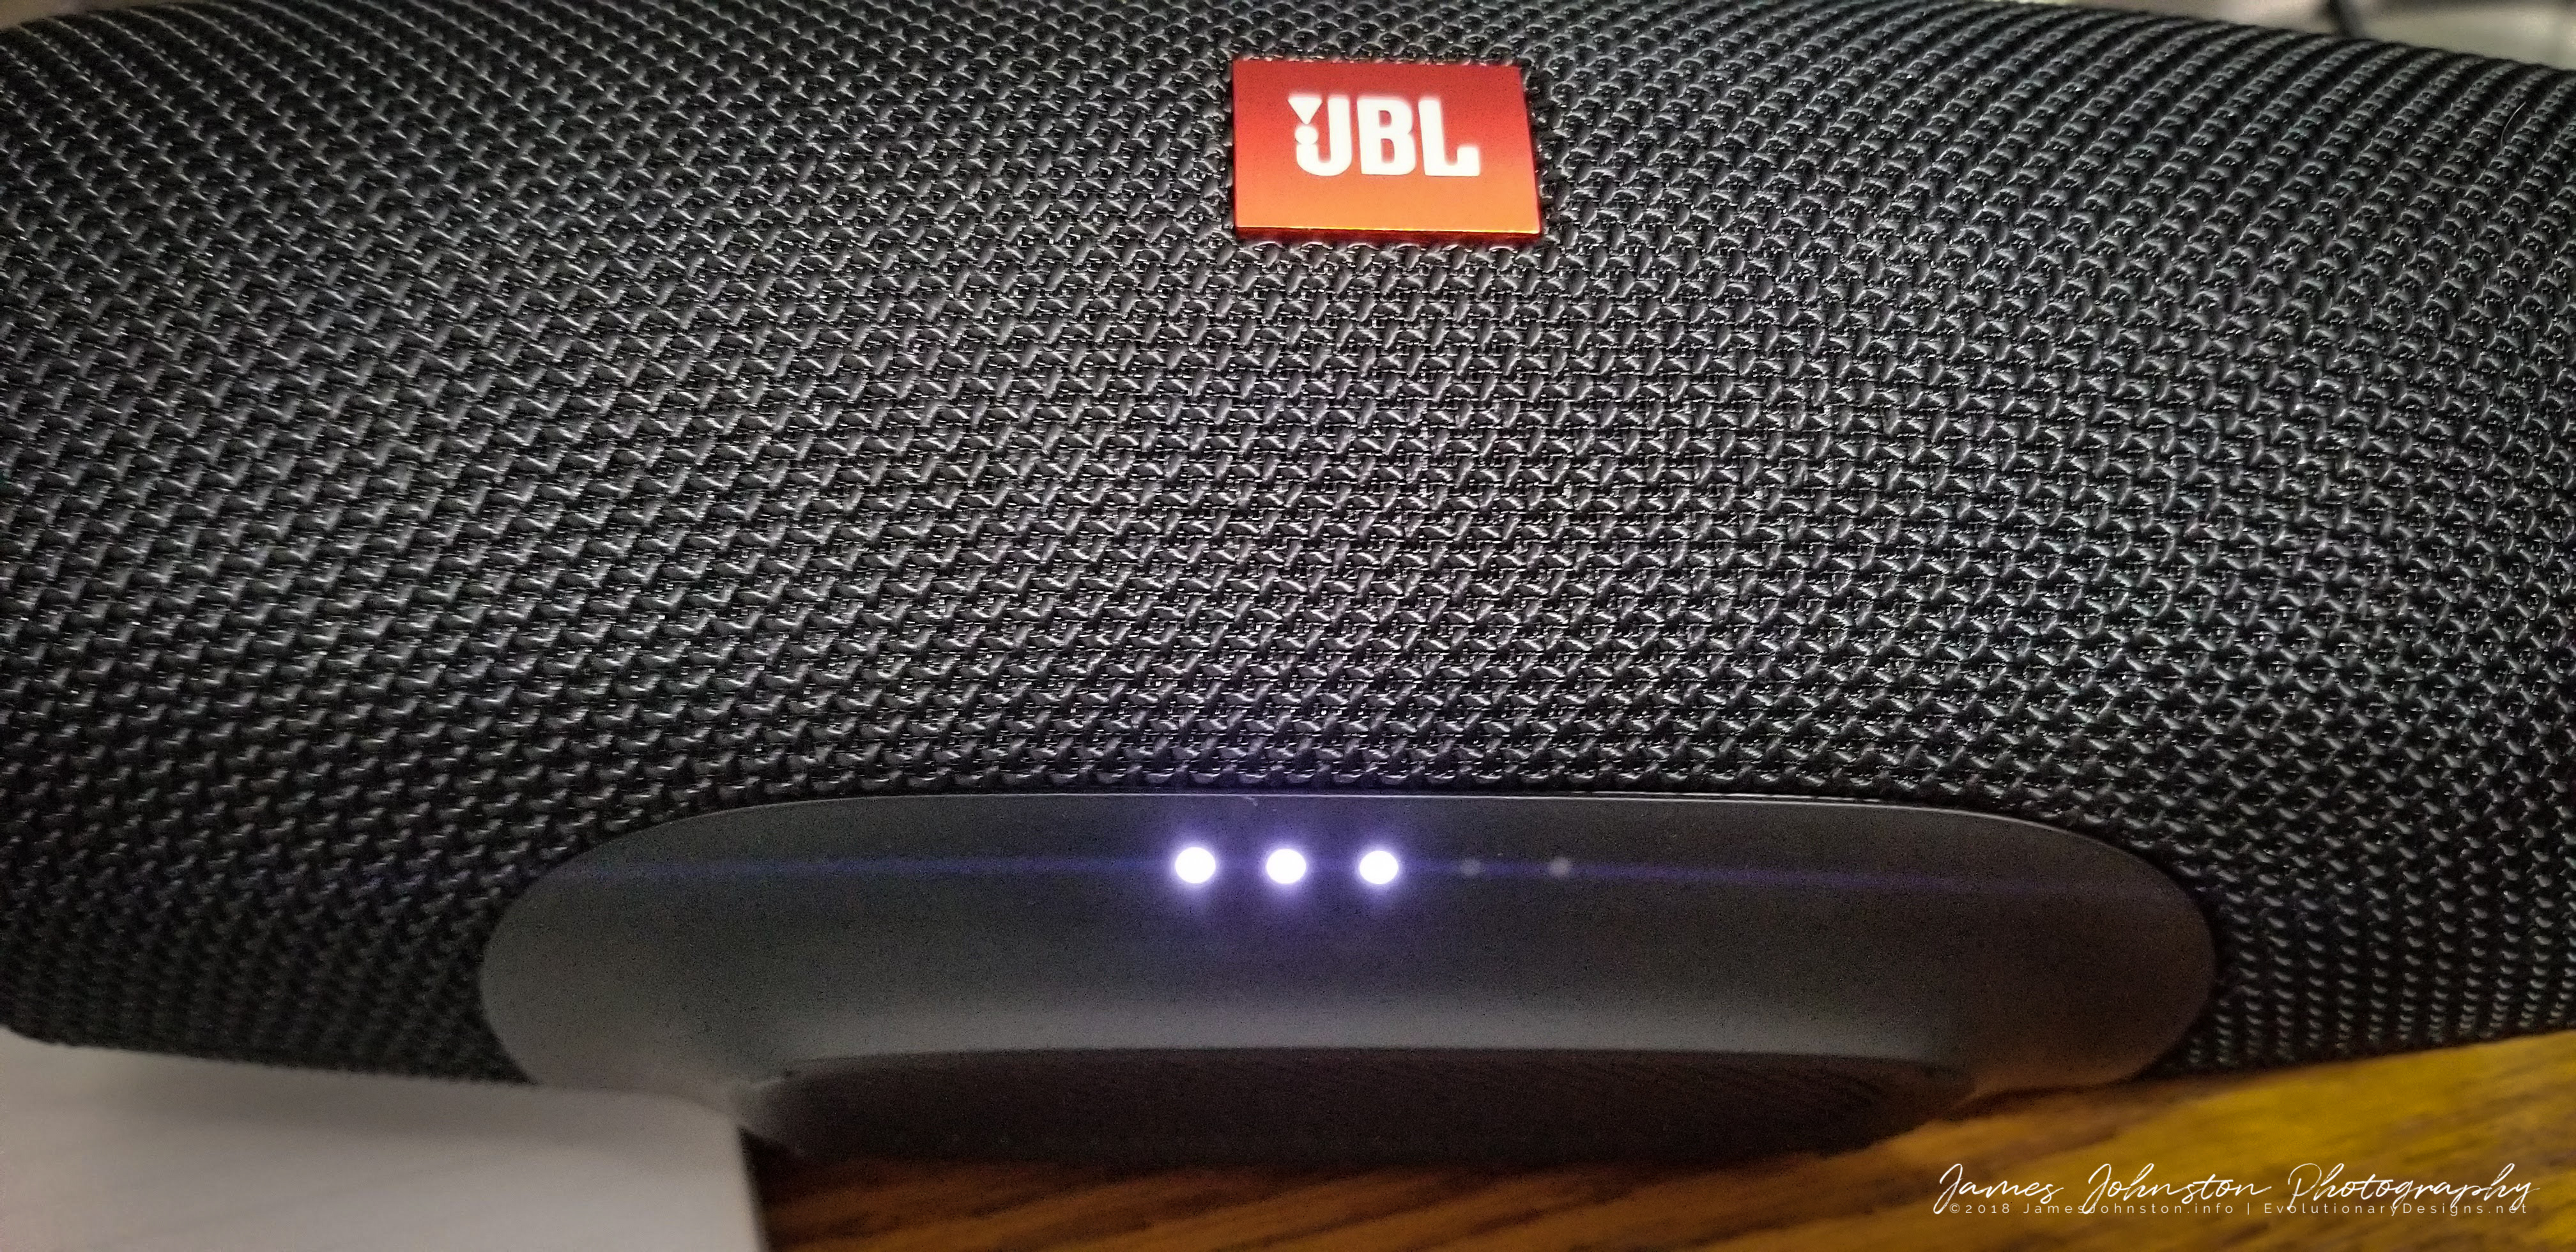 Review: JBL Charge 4 - James Johnston